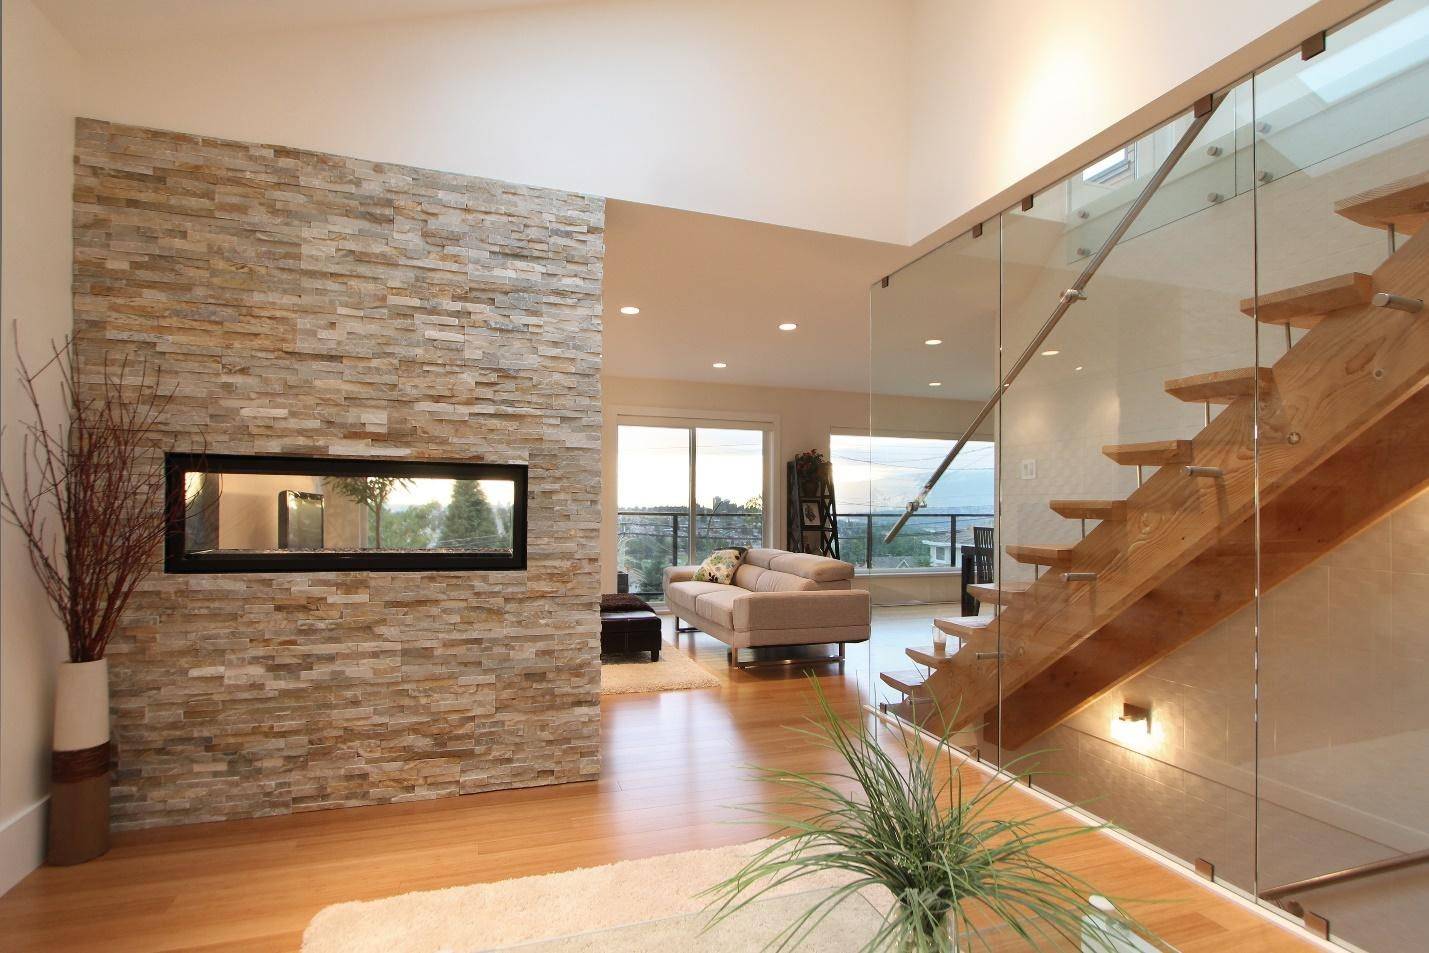 ECONOMICAL WAYS OF RENOVATING YOUR HOME